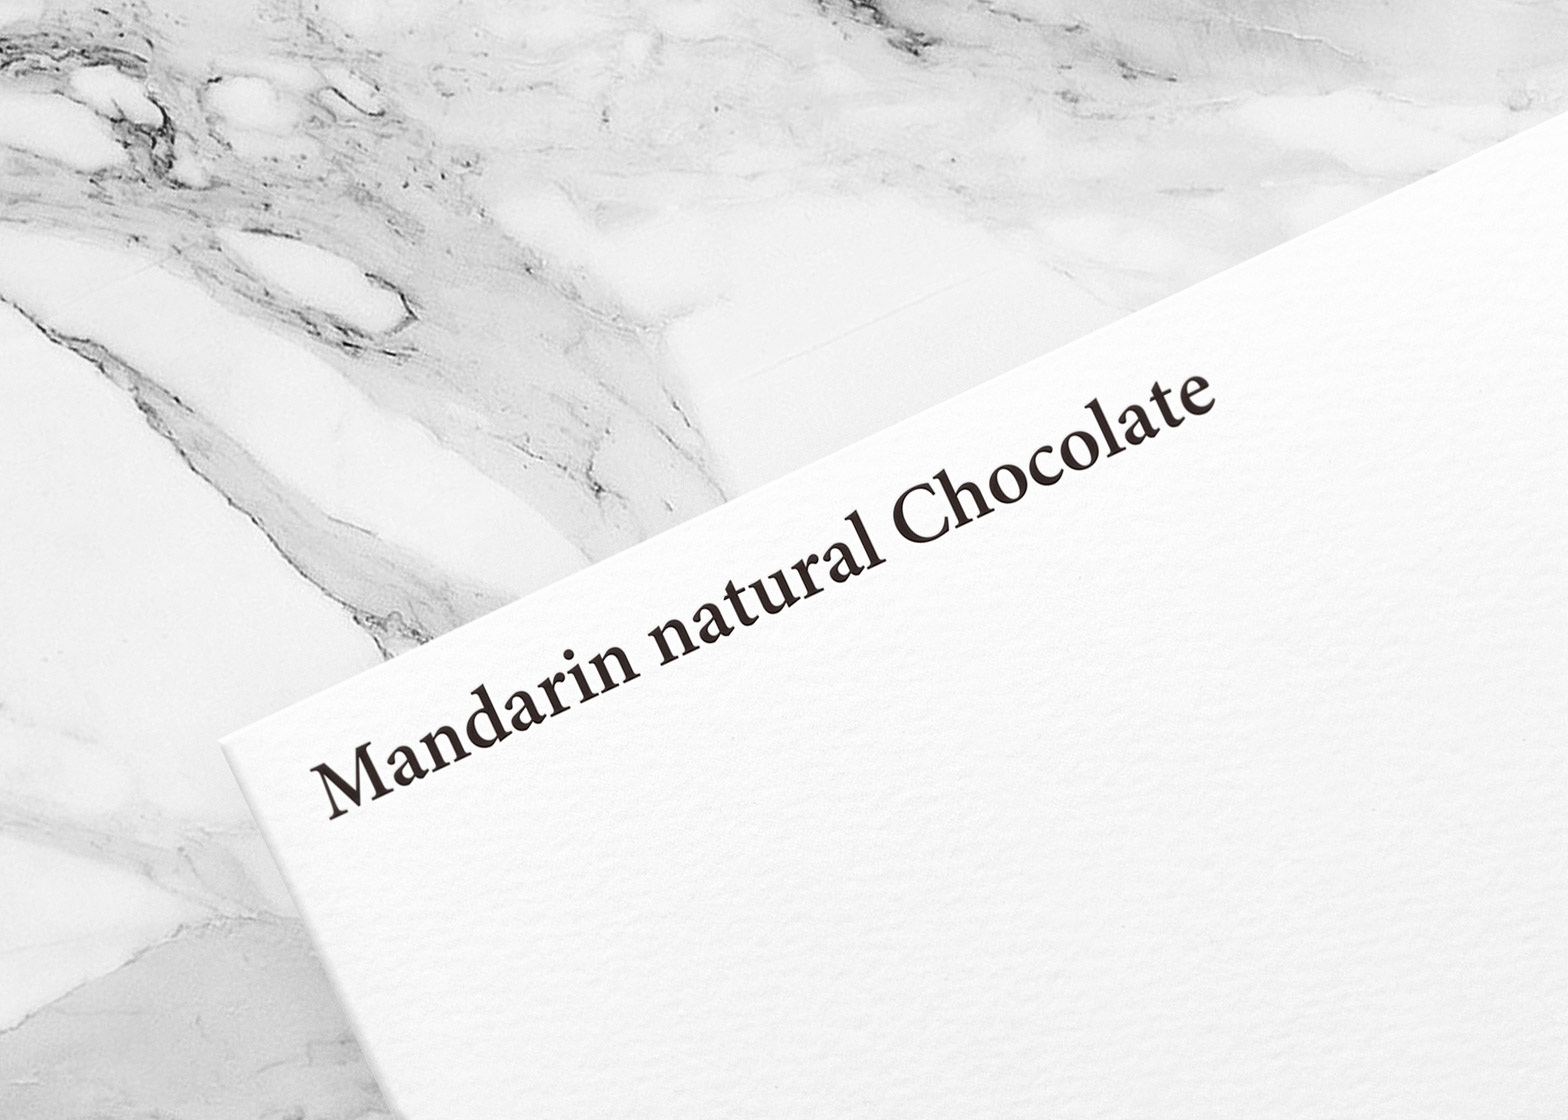 mandarin-natural-chocolate-yuta-takahashi-branding-packaging-design_dezeen_1568_2